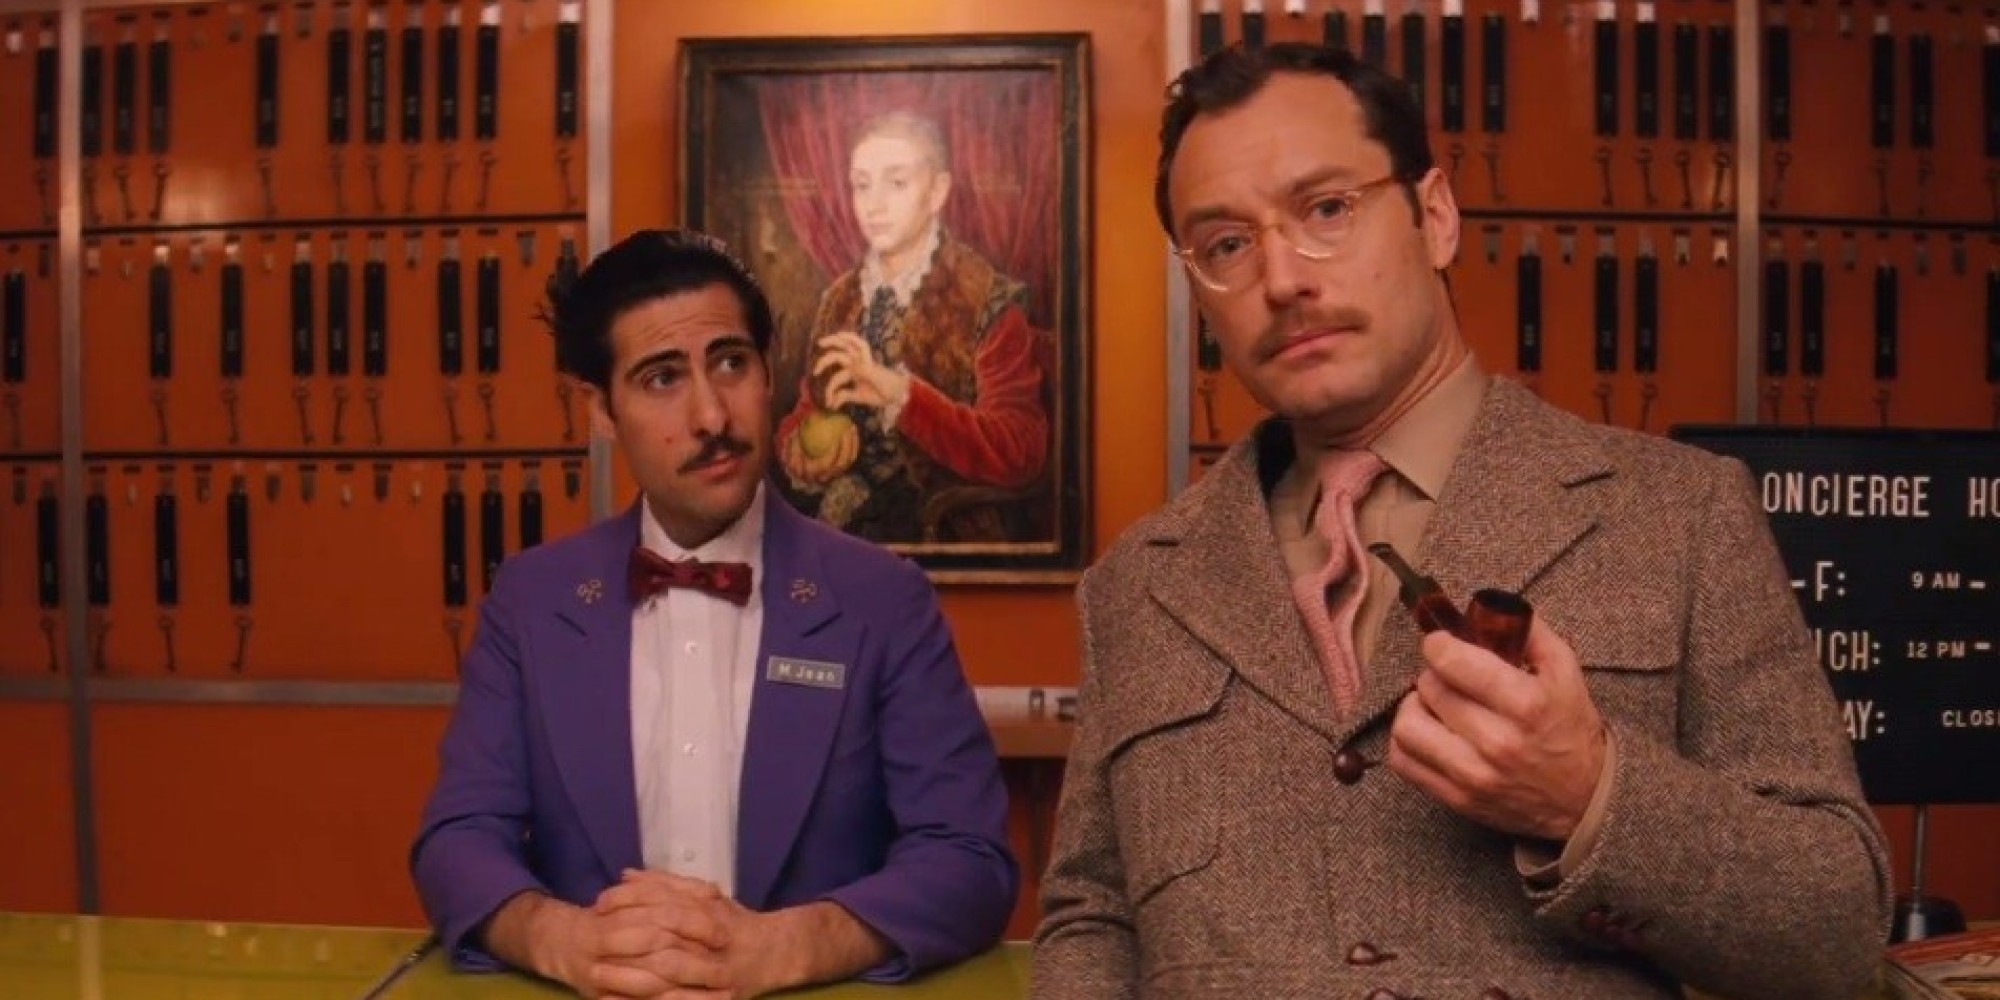 Grand Budapest Hotel Quotes Grand Budapest Hotel' Trailer Introduces The Cast  Huffpost